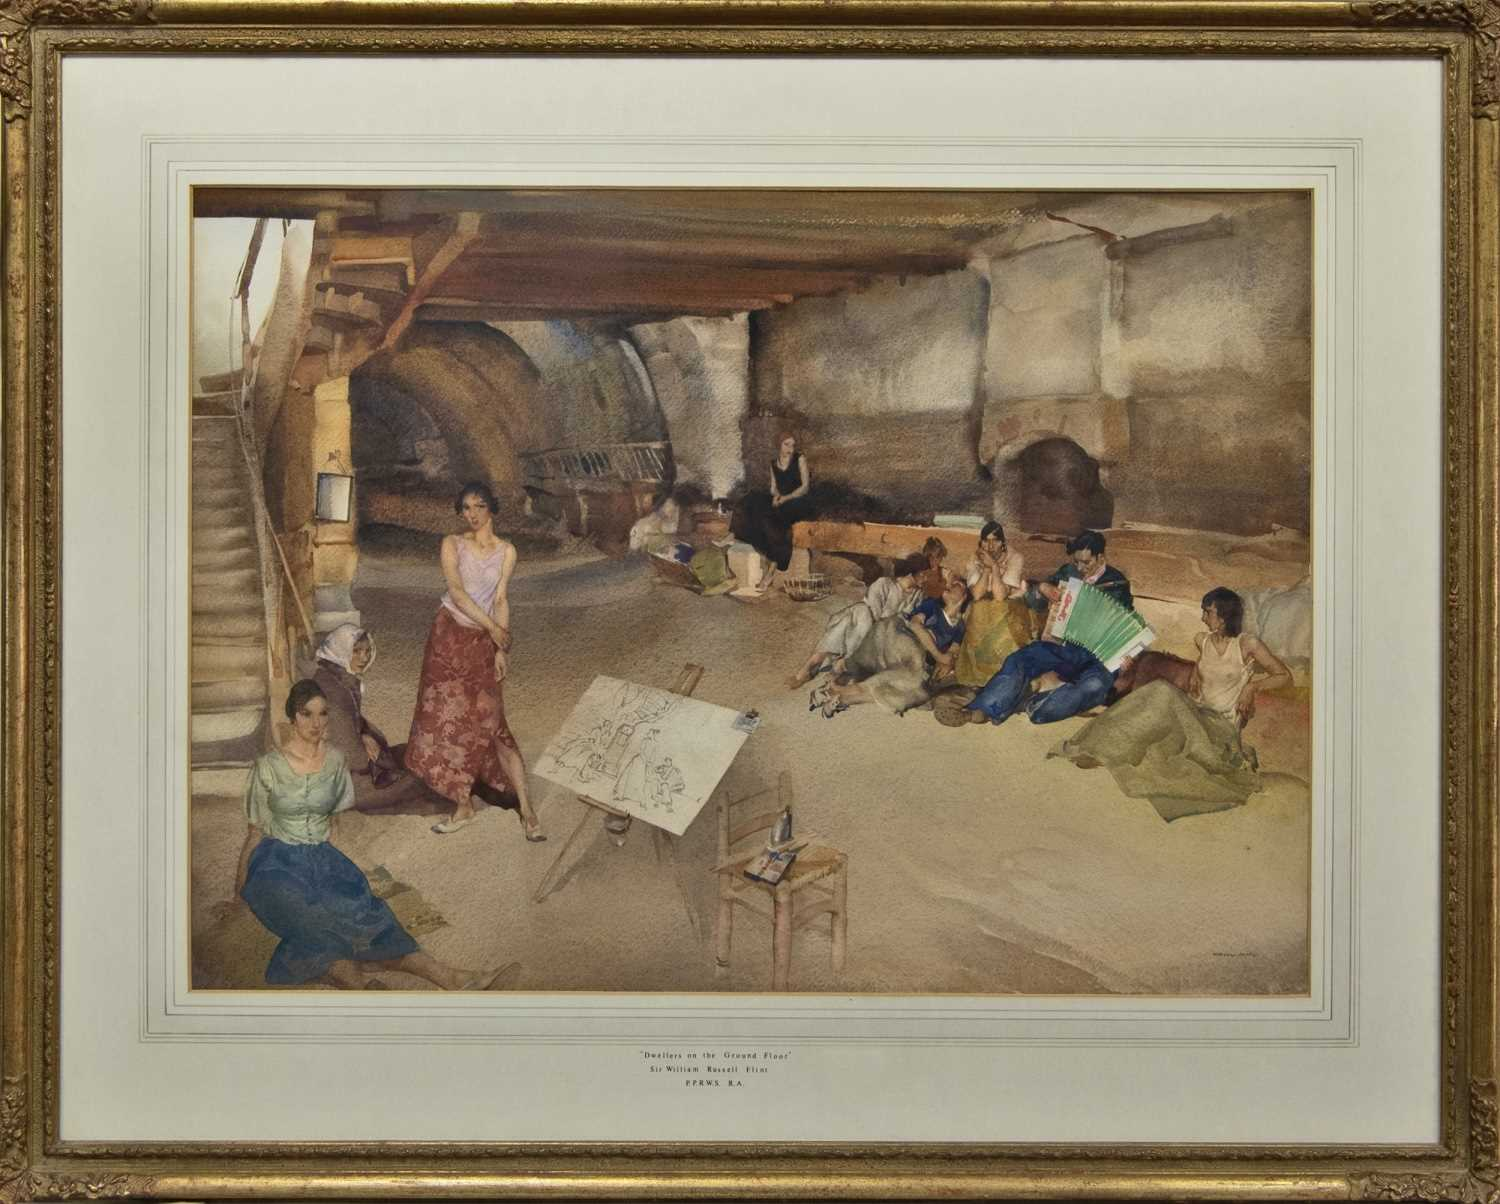 Lot 178 - DWELLERS ON THE GROUND FLOOR, A WATERCOLOUR BY SIR WILLIAM RUSSELL FLINT